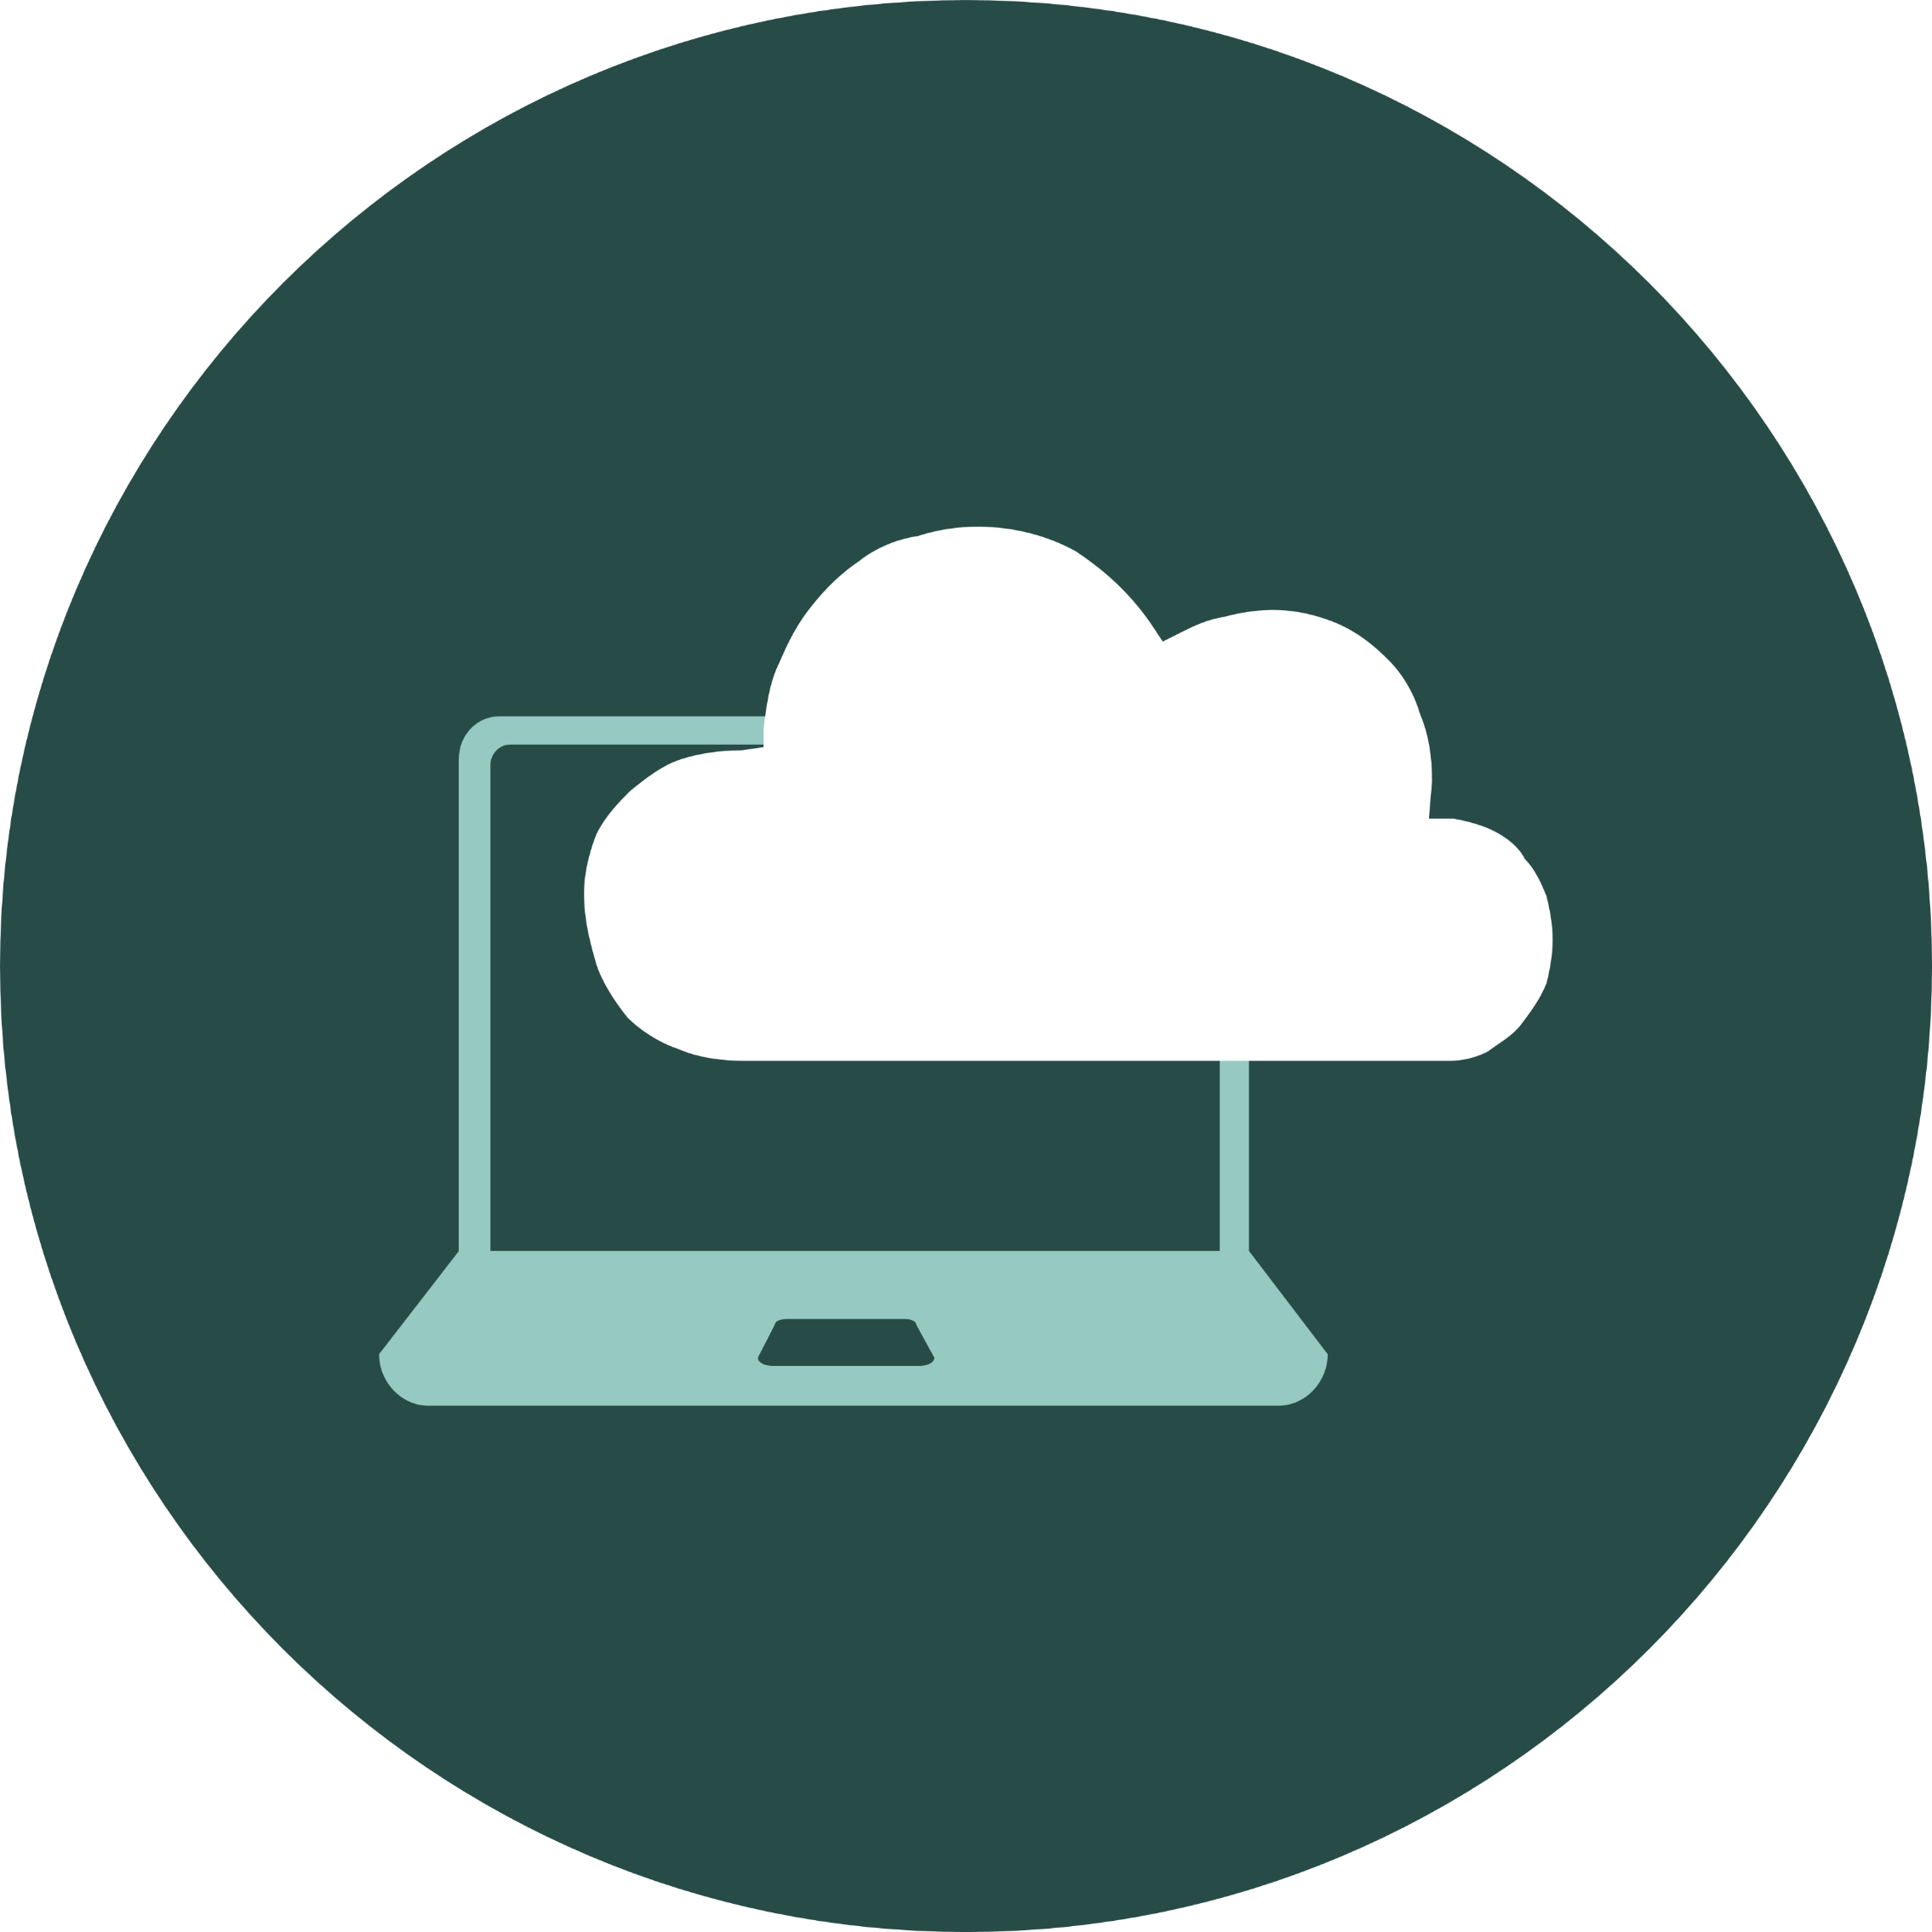 Enable remote access to cloud & on-premises apps without VPN